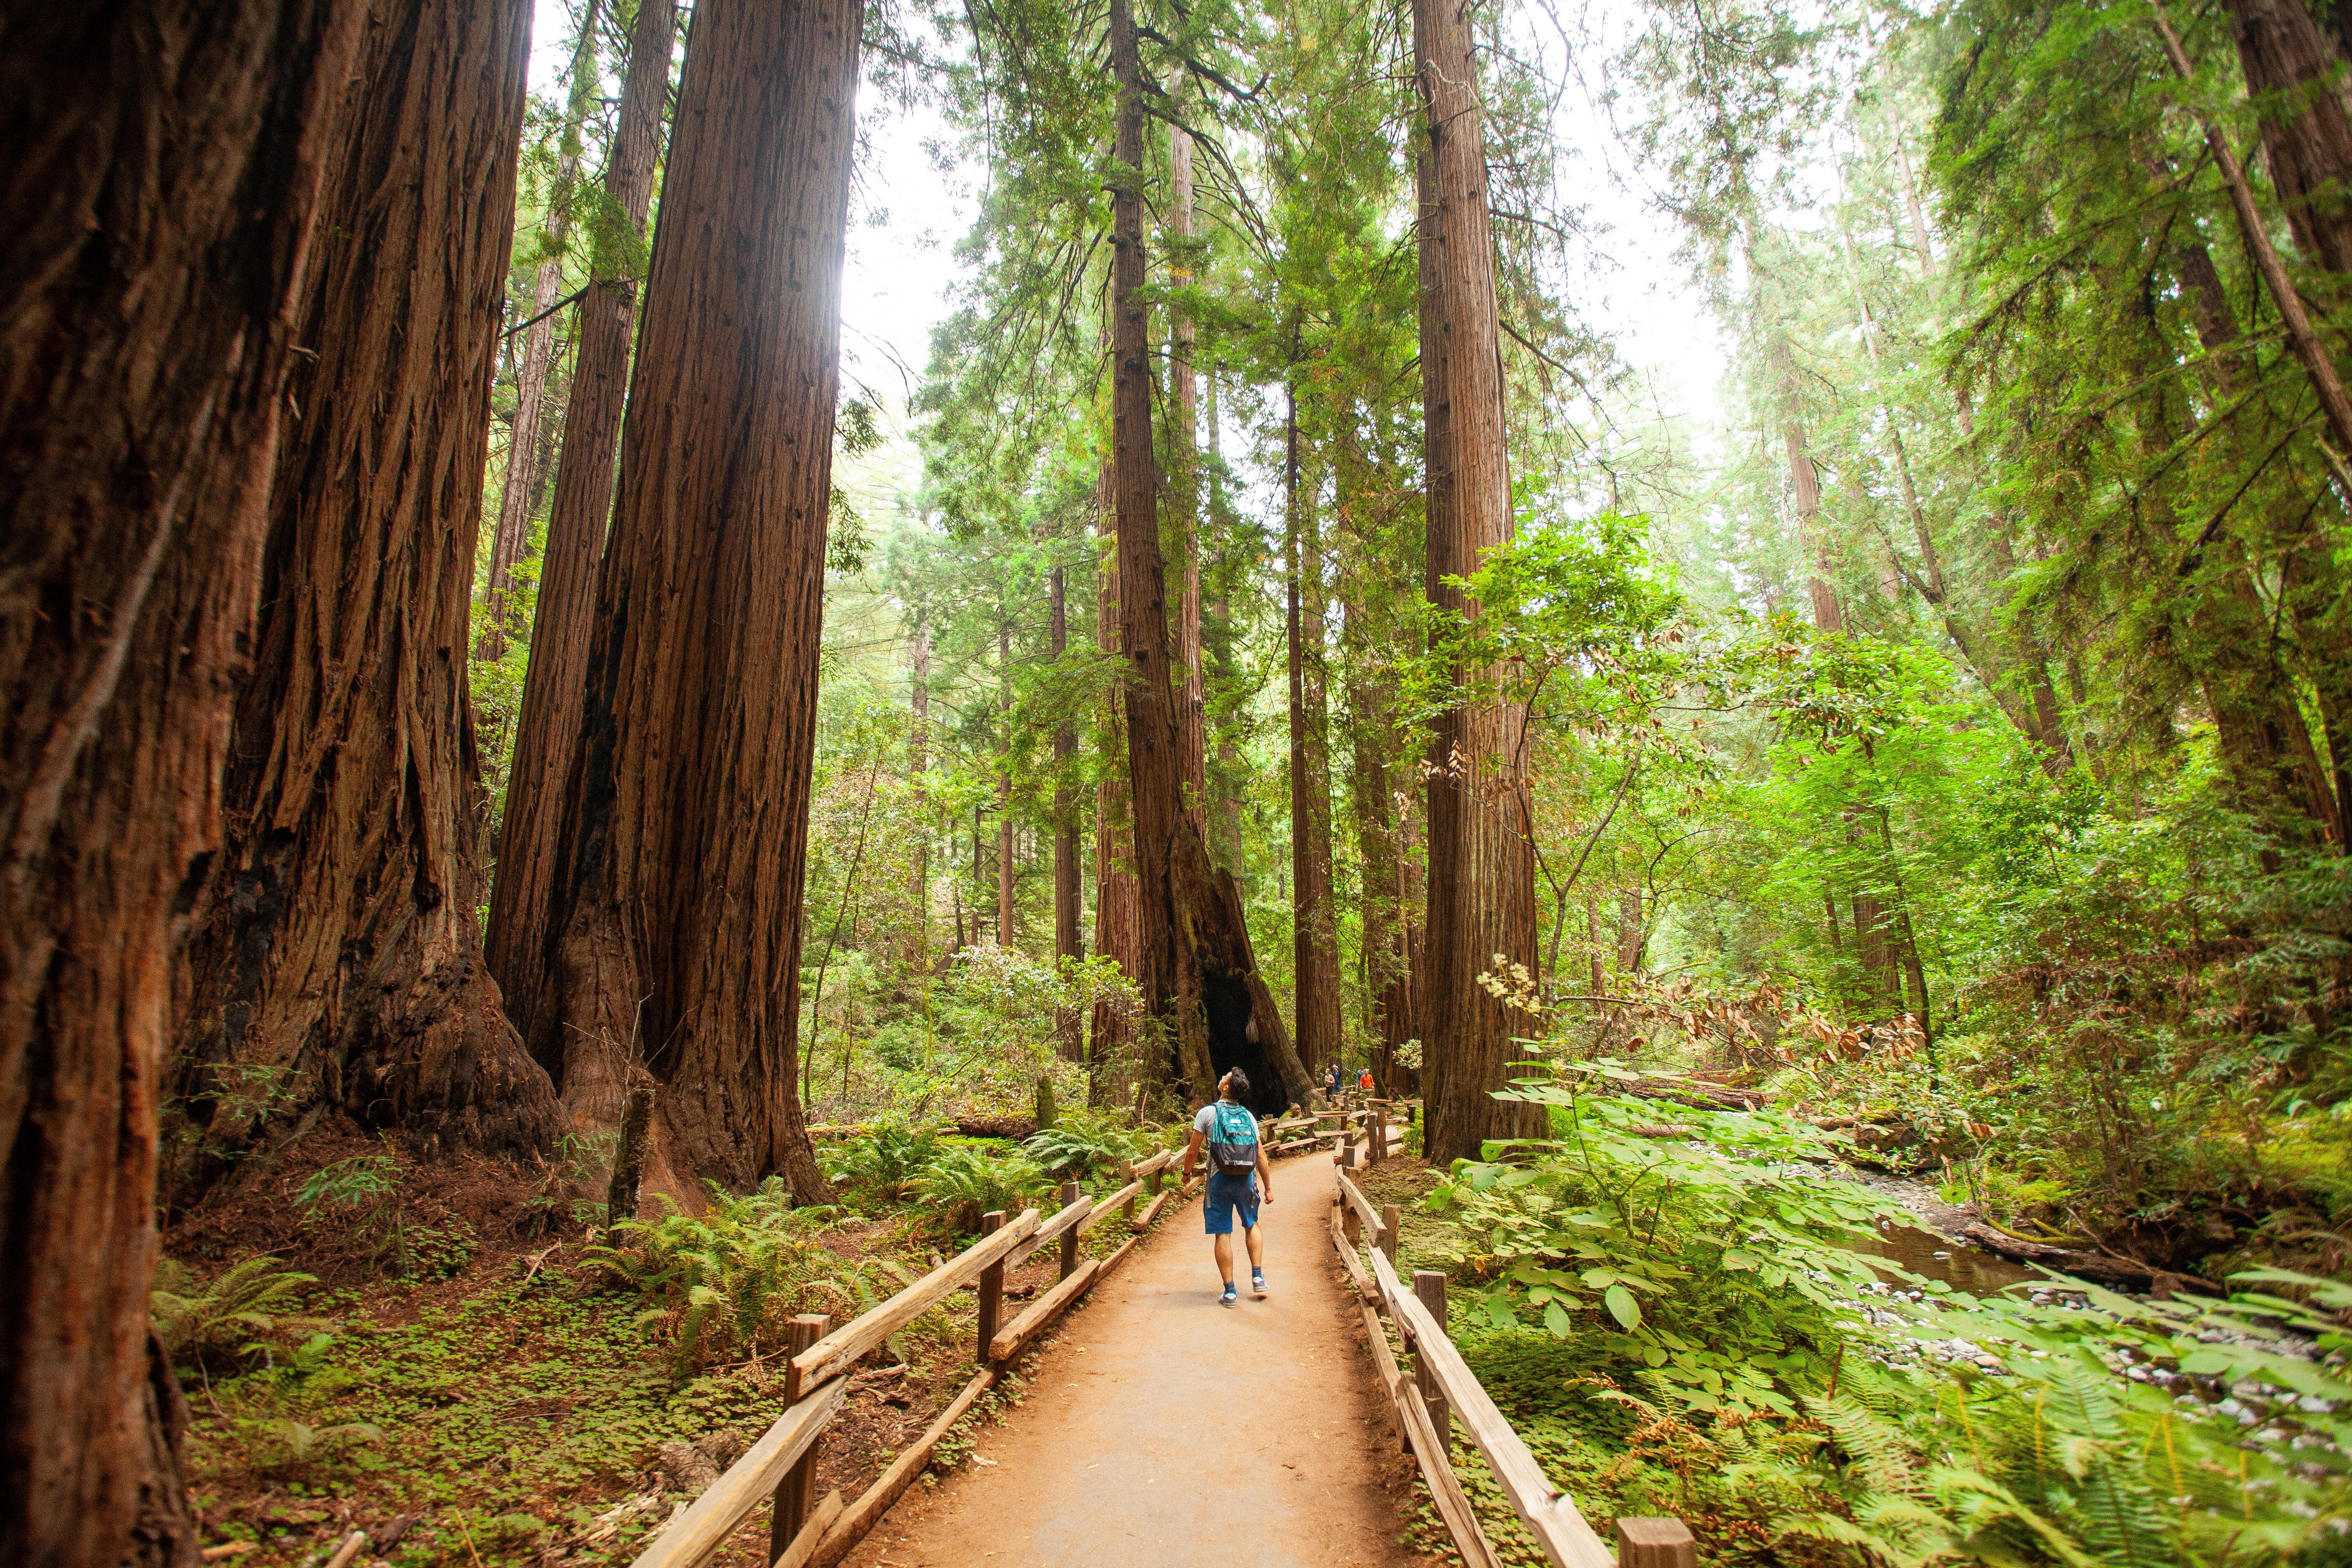 Guide to Marin County: Sausalito, Muir Woods, and More